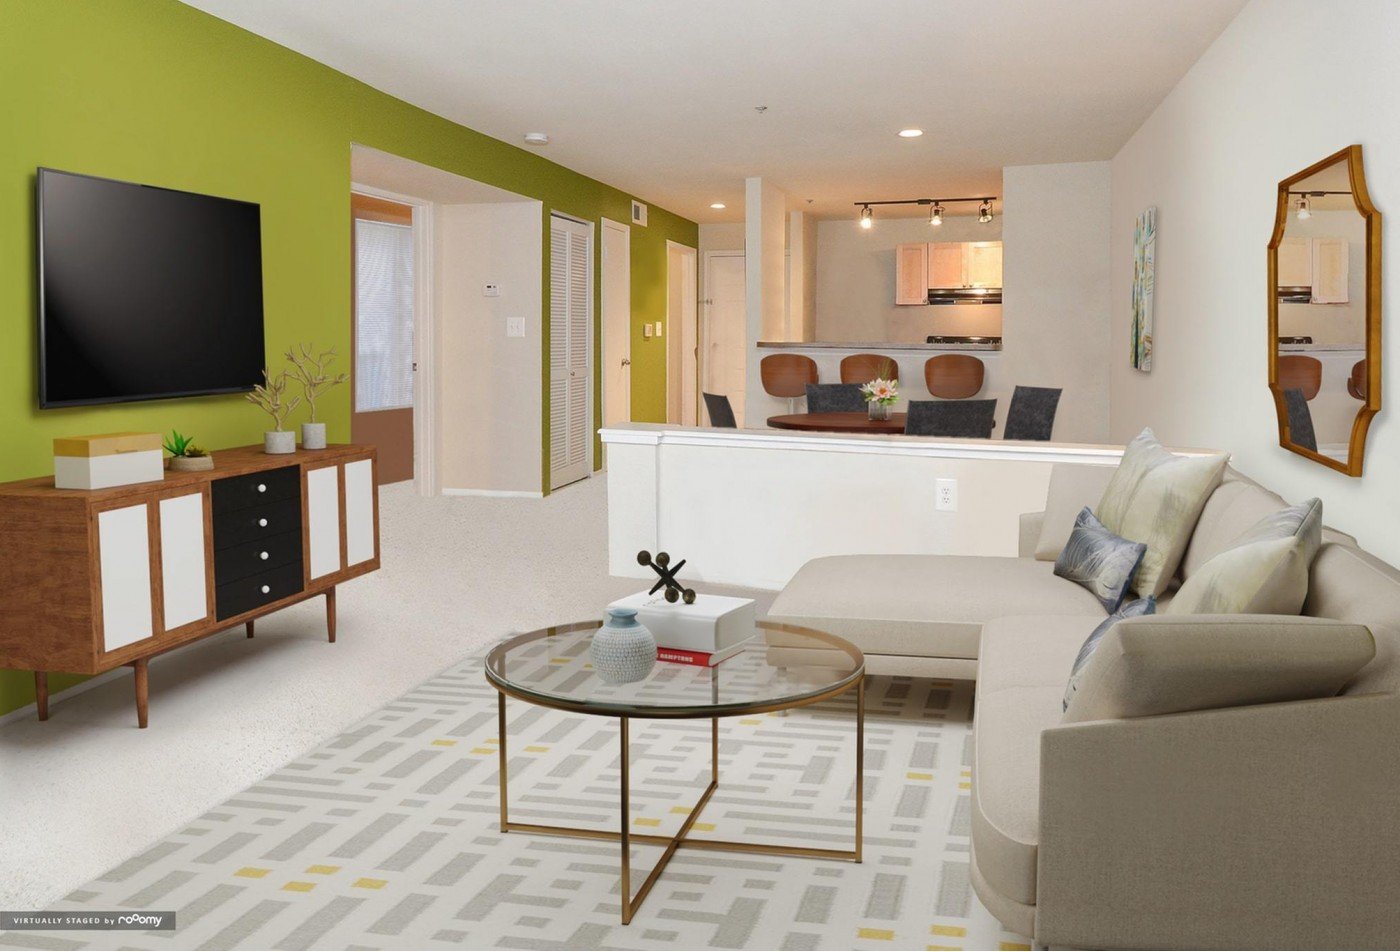 Spacious Living Room   Apartments in Baltimore, MD   Waterloo Place Apartments